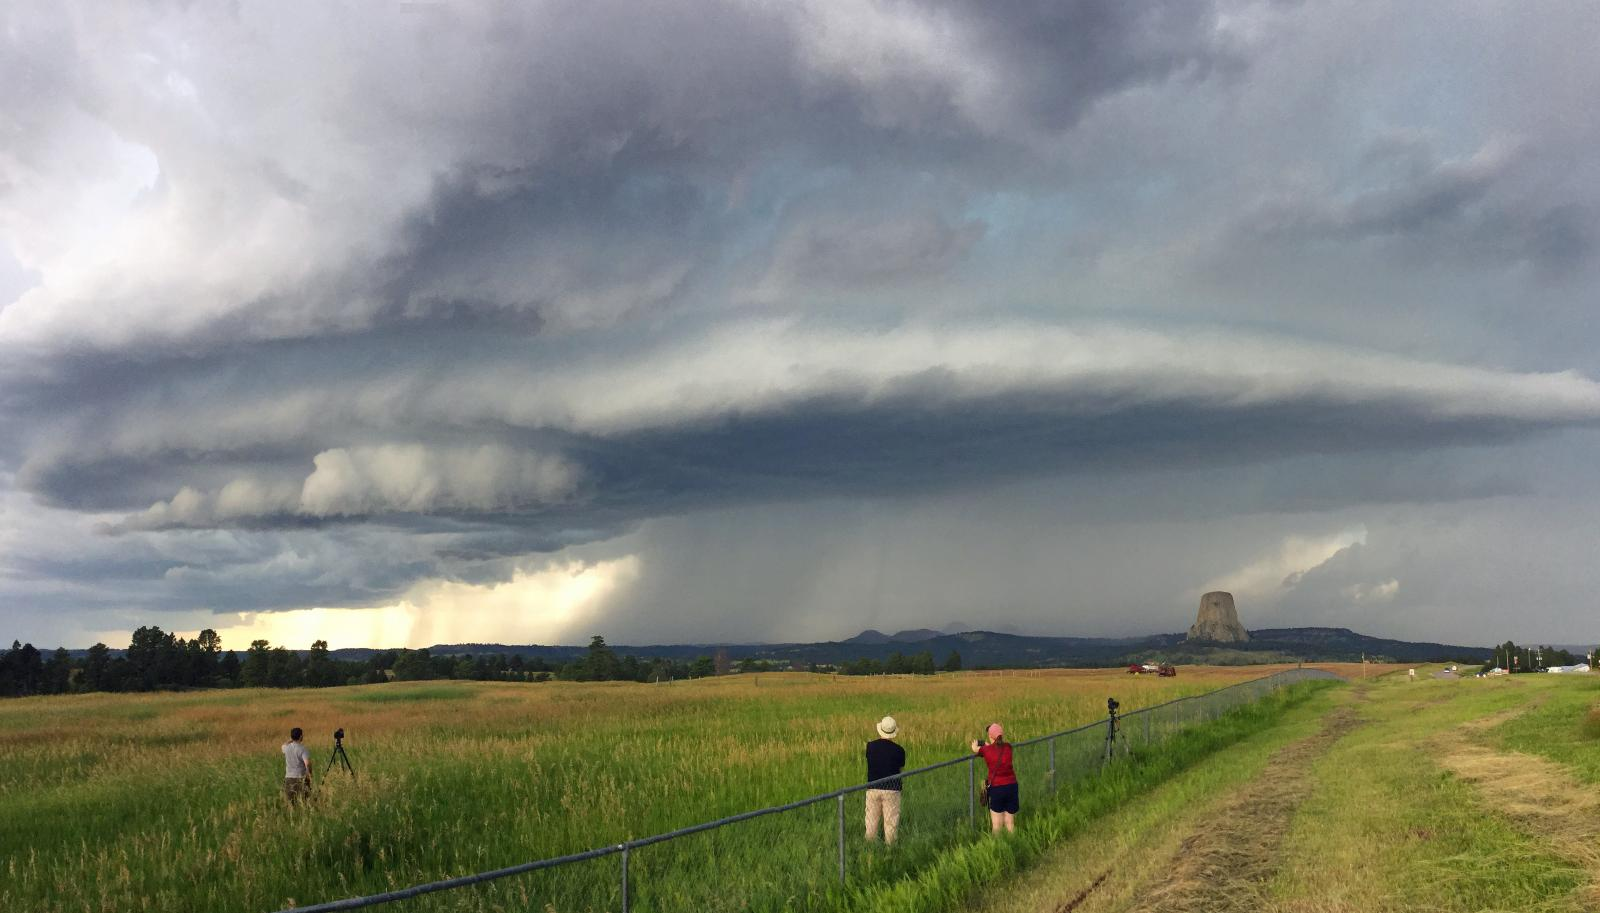 Devils tower supercell